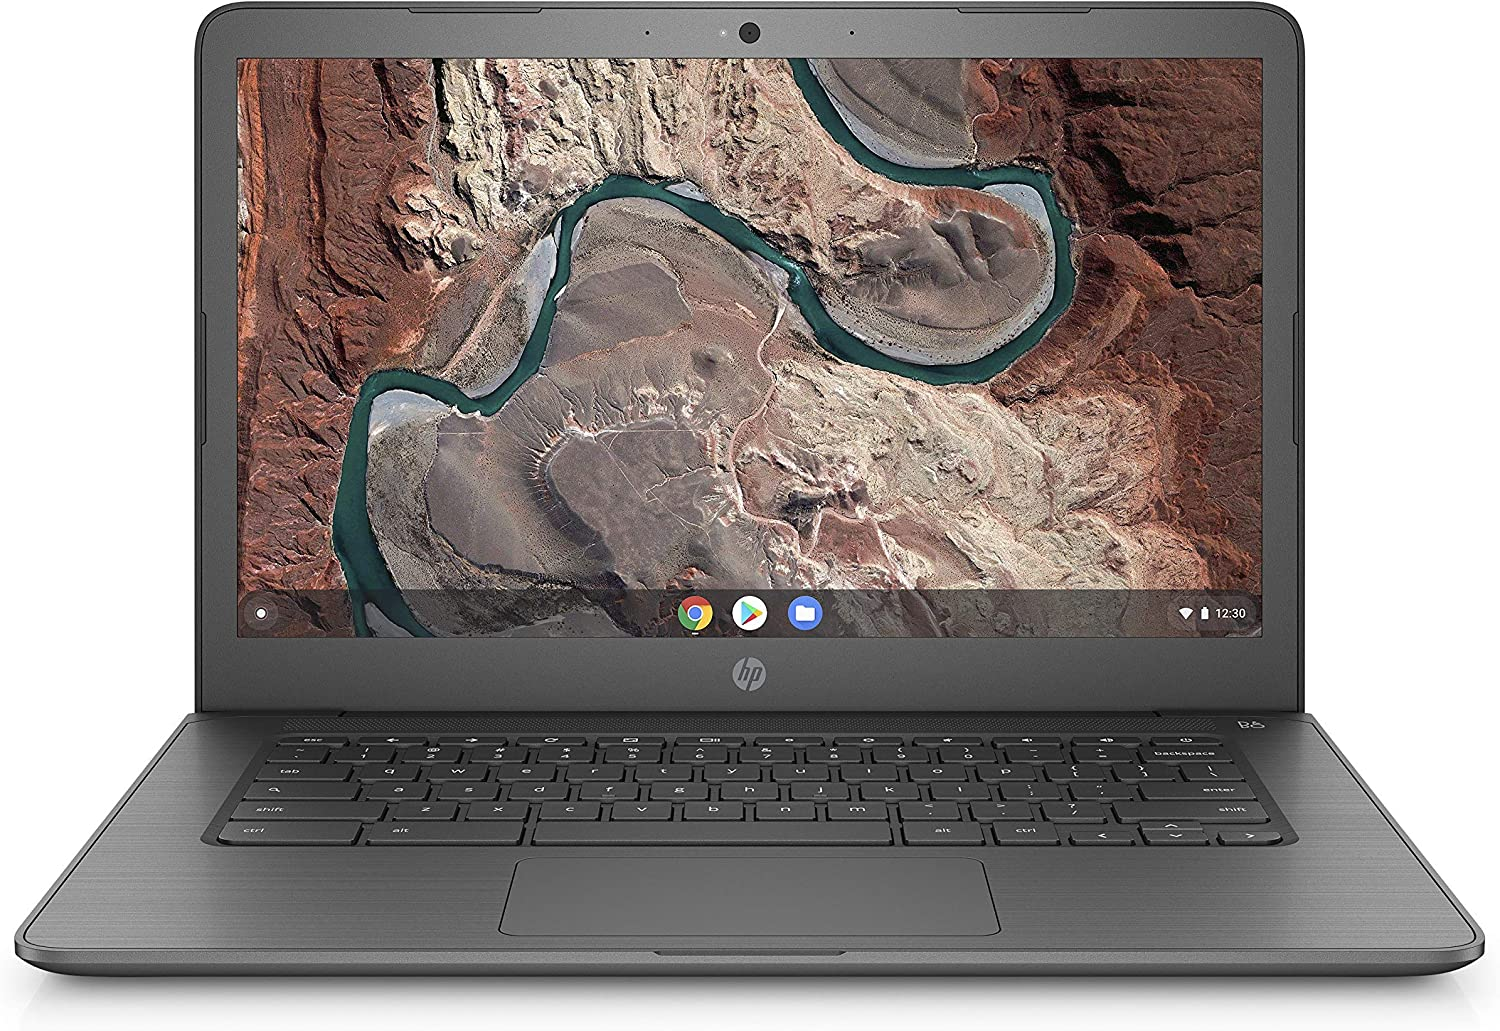 HP 14inch Chromebook AMD Dual-Core A4-9120C Processor, 4GB DDR4 Memory, 32GB eMMC Storage, AMD Radeon R4 Graphics, Chrome OS-Gray(Renewed)